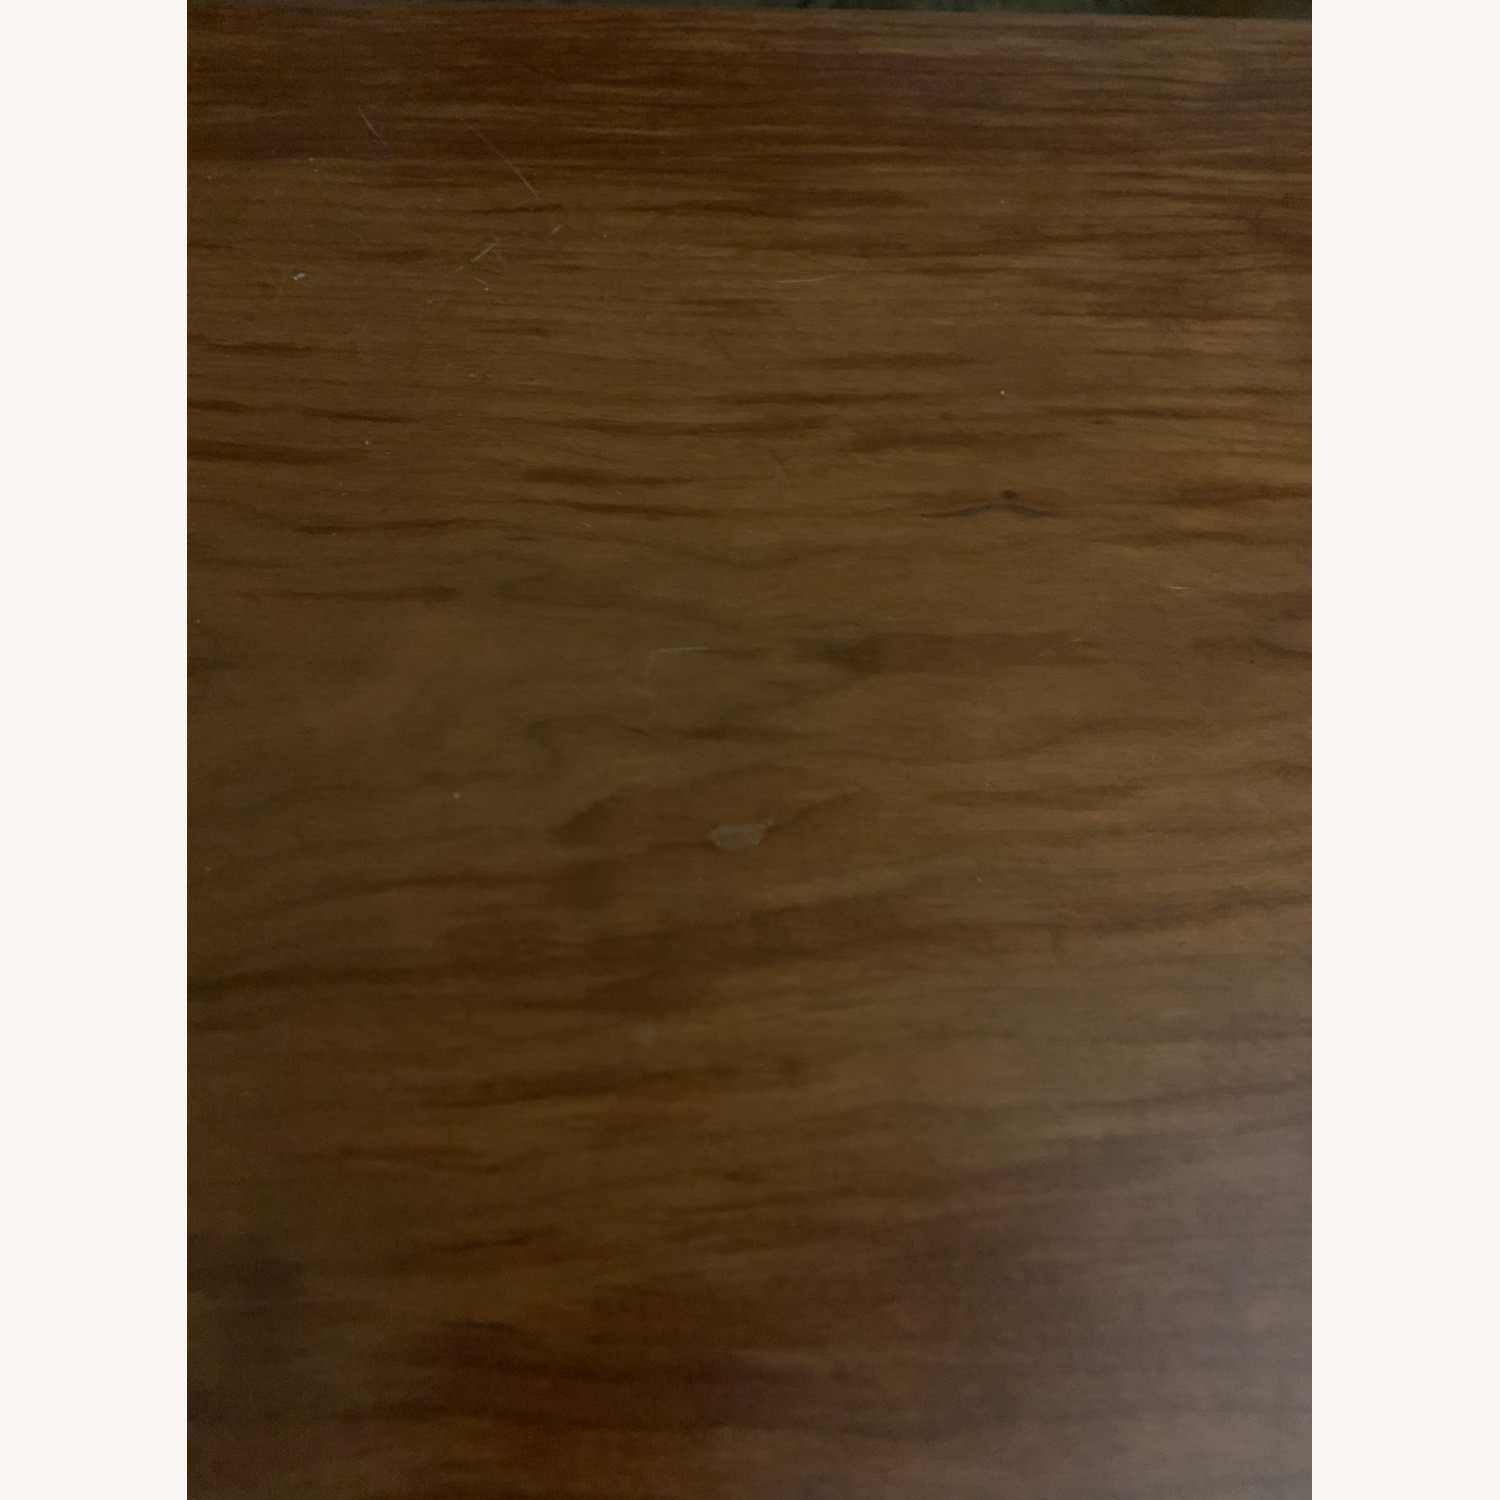 Urbangreen Furniture Coffee Table Cherry Wood Toffee Color - image-3